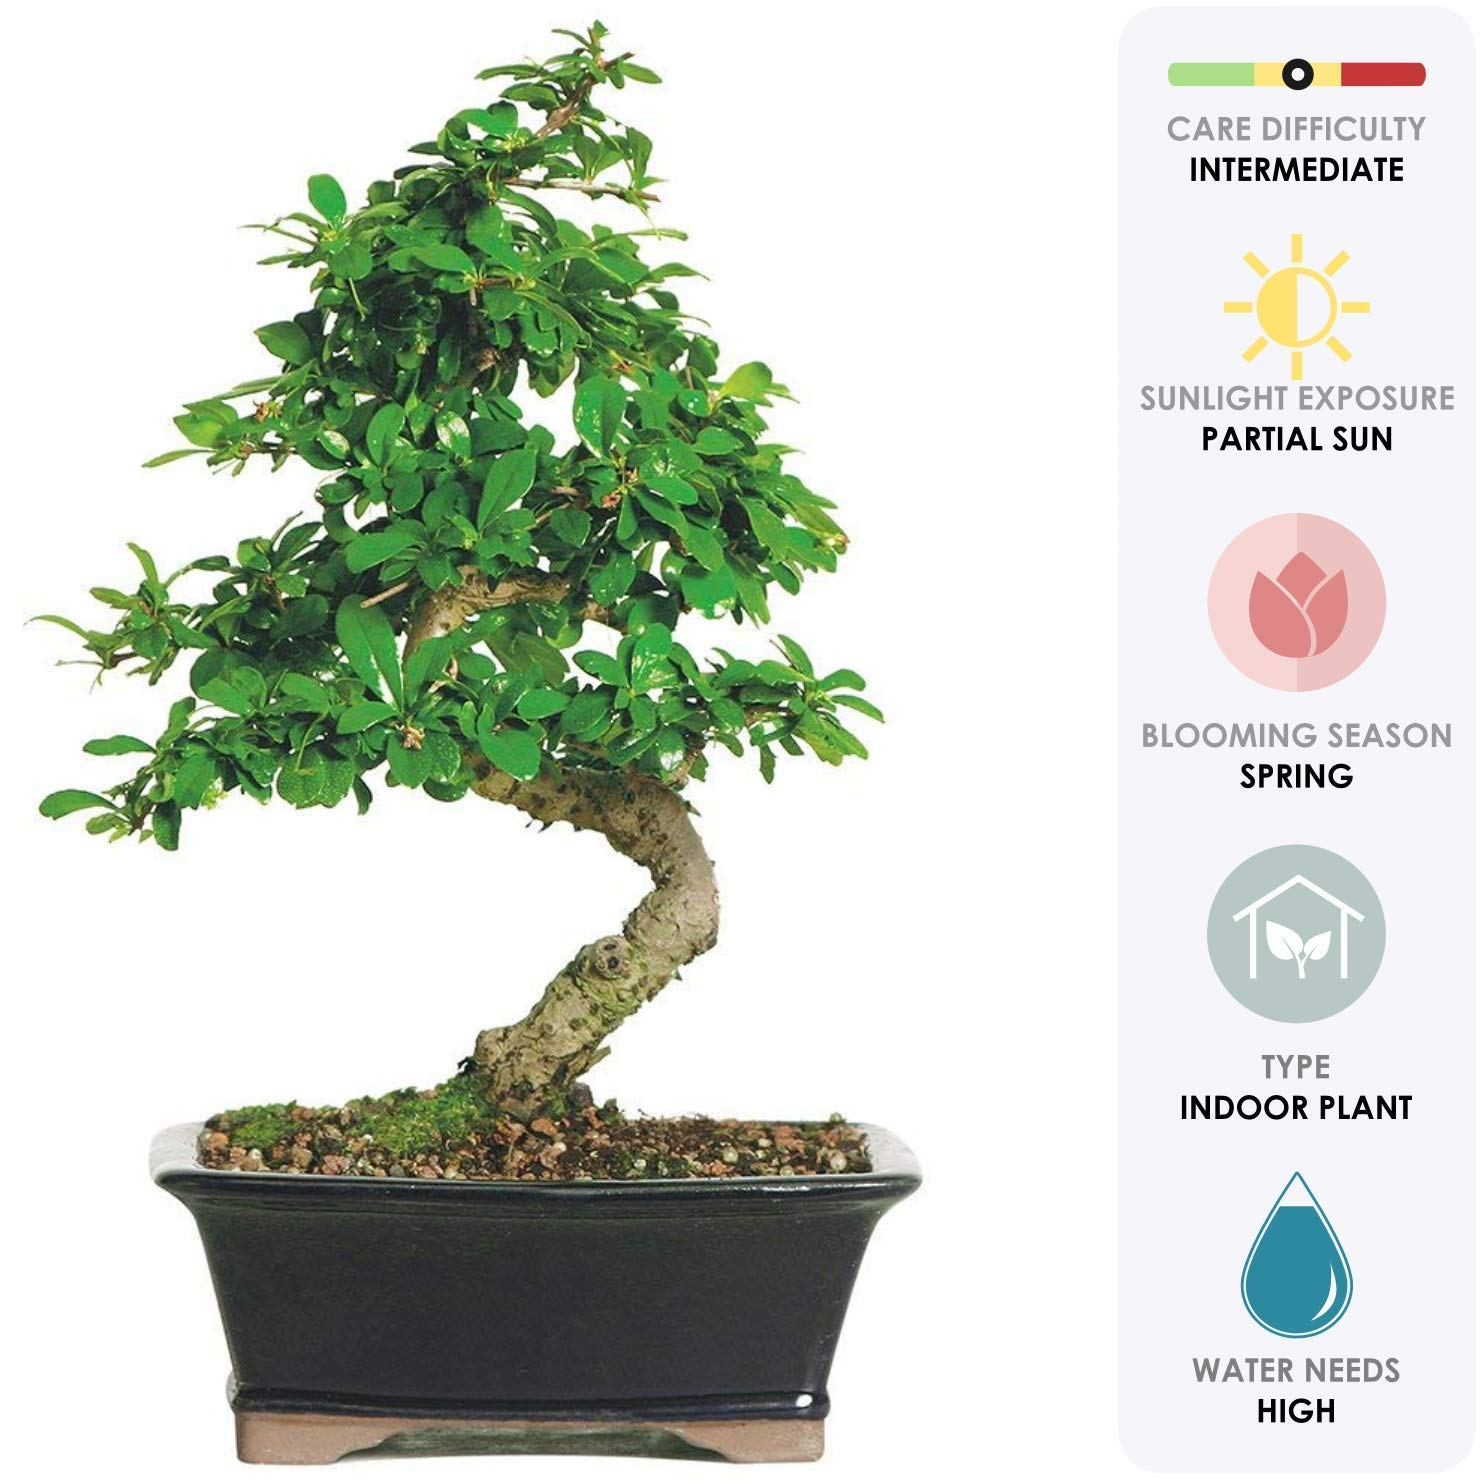 Brussel's Bonsai Live Fukien Tea Indoor Bonsai Tree - 6 Years Old; 6'' to 10'' Tall with Decorative Container by Brussel's Bonsai (Image #1)